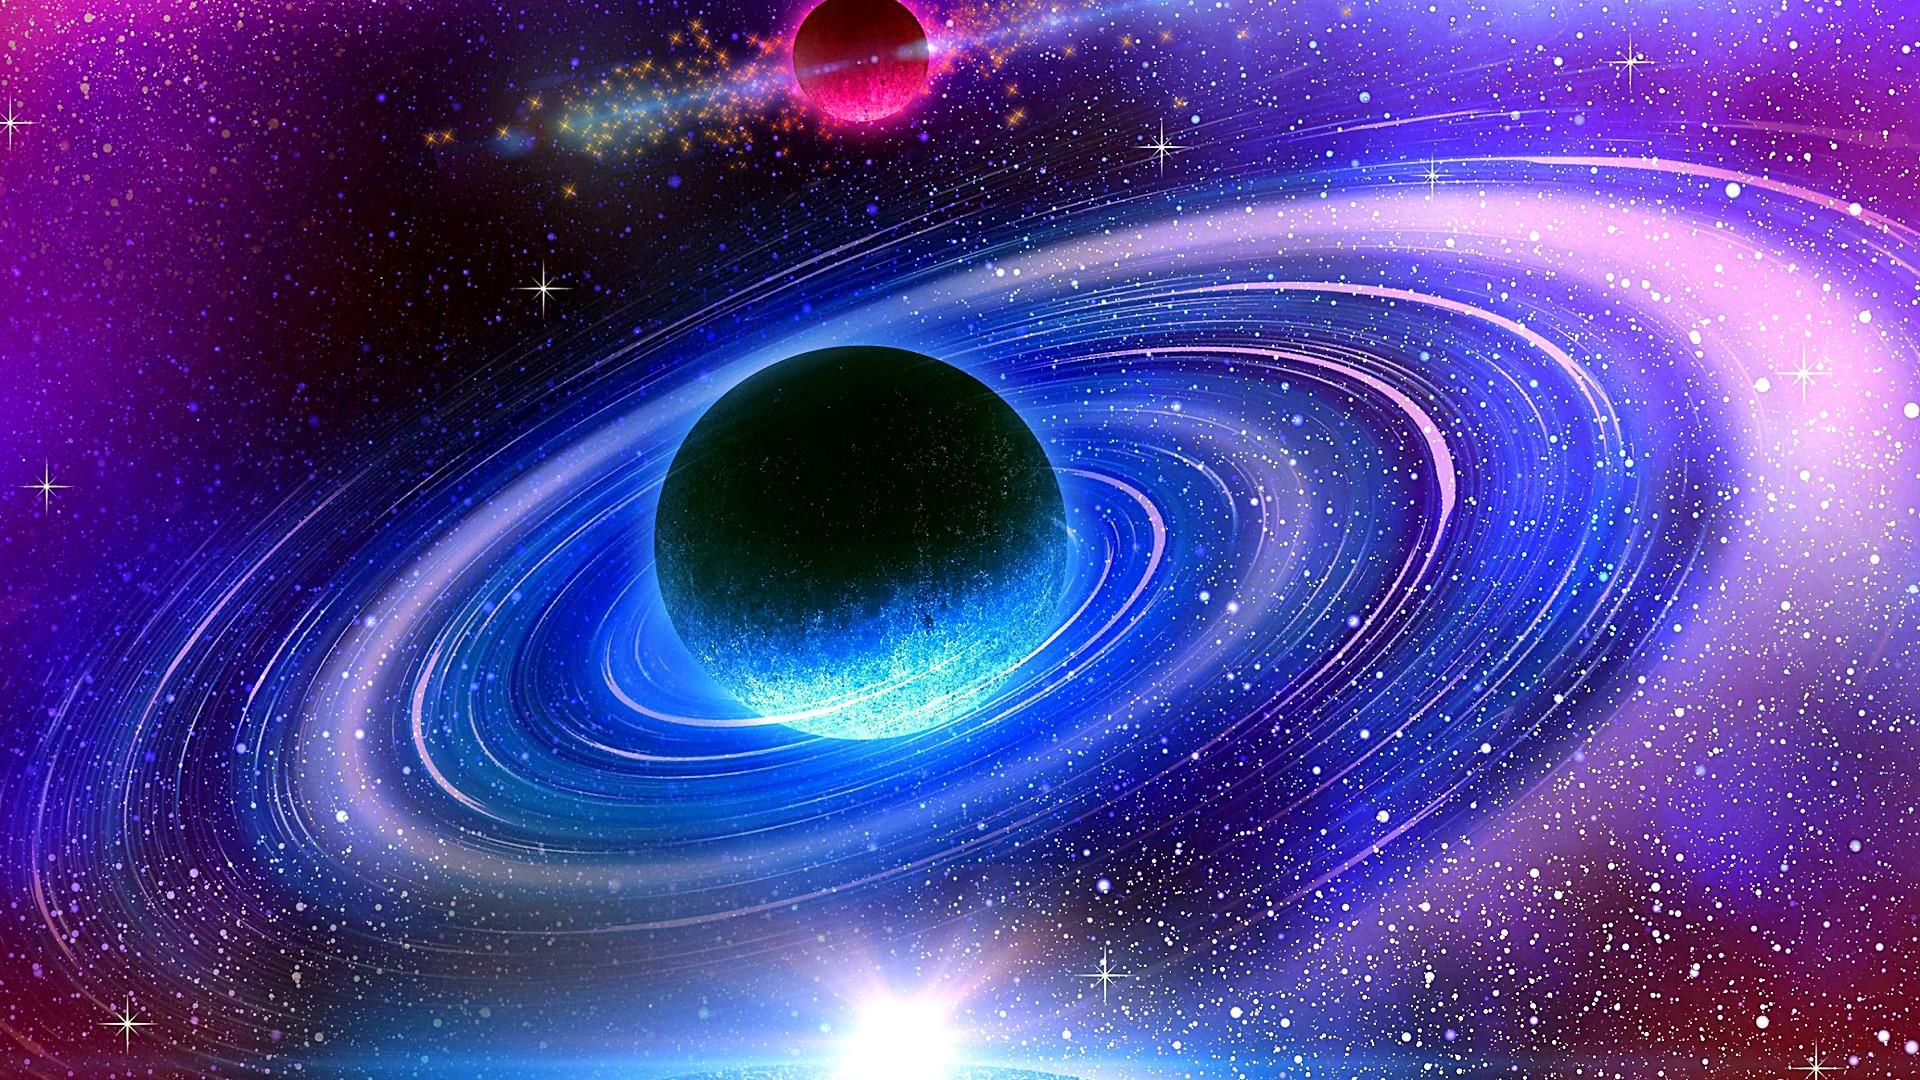 Wallpaper of Planet, Space, Star, Galaxy background and HD image